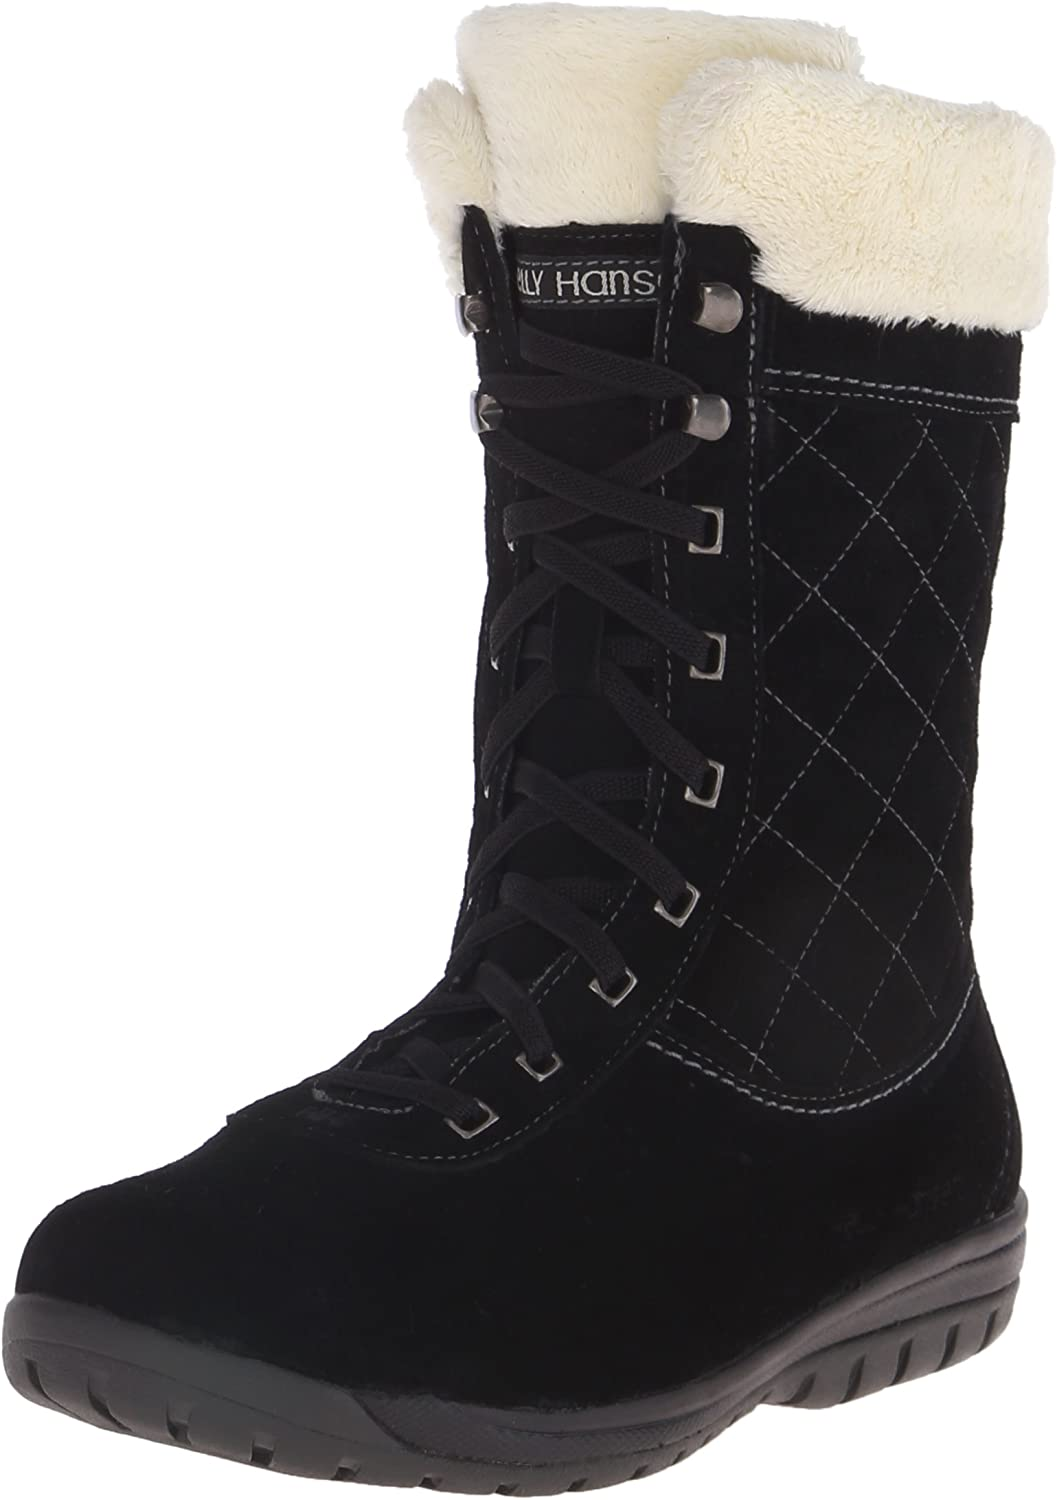 Helly Hansen Women's Eir 4 Winter Boot